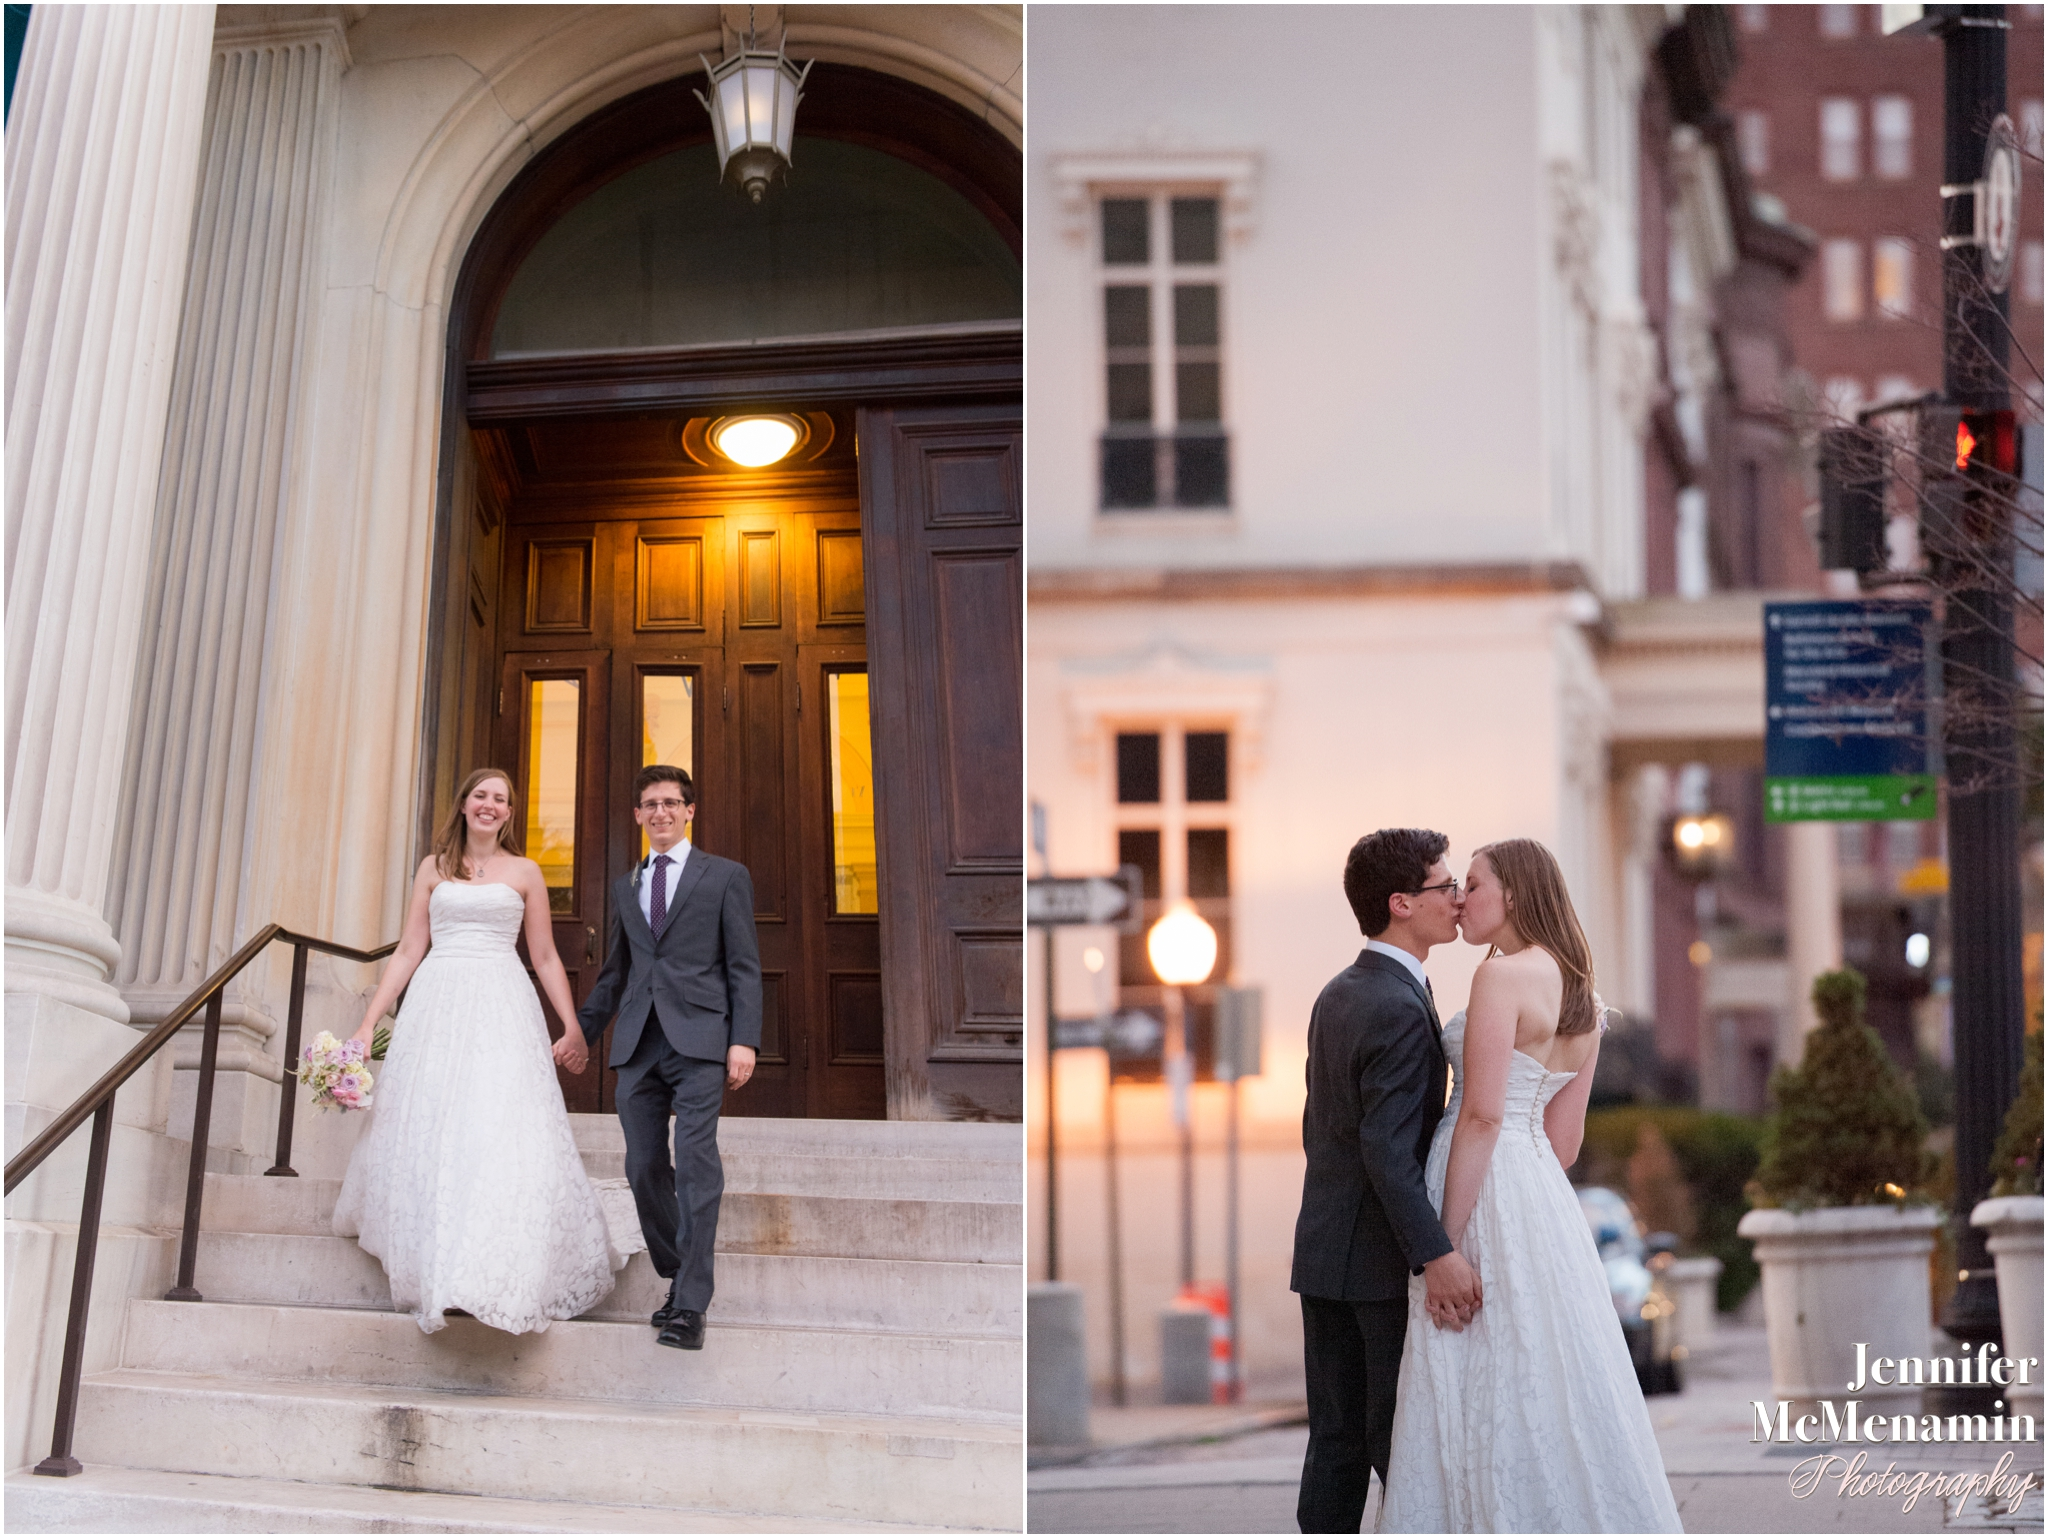 0117-WebbSlivnick_04547-0954_JenniferMcMenaminPhotography_George-Peabody-Library-wedding_Baltimore-wedding-photography_Baltimore-wedding-photographer